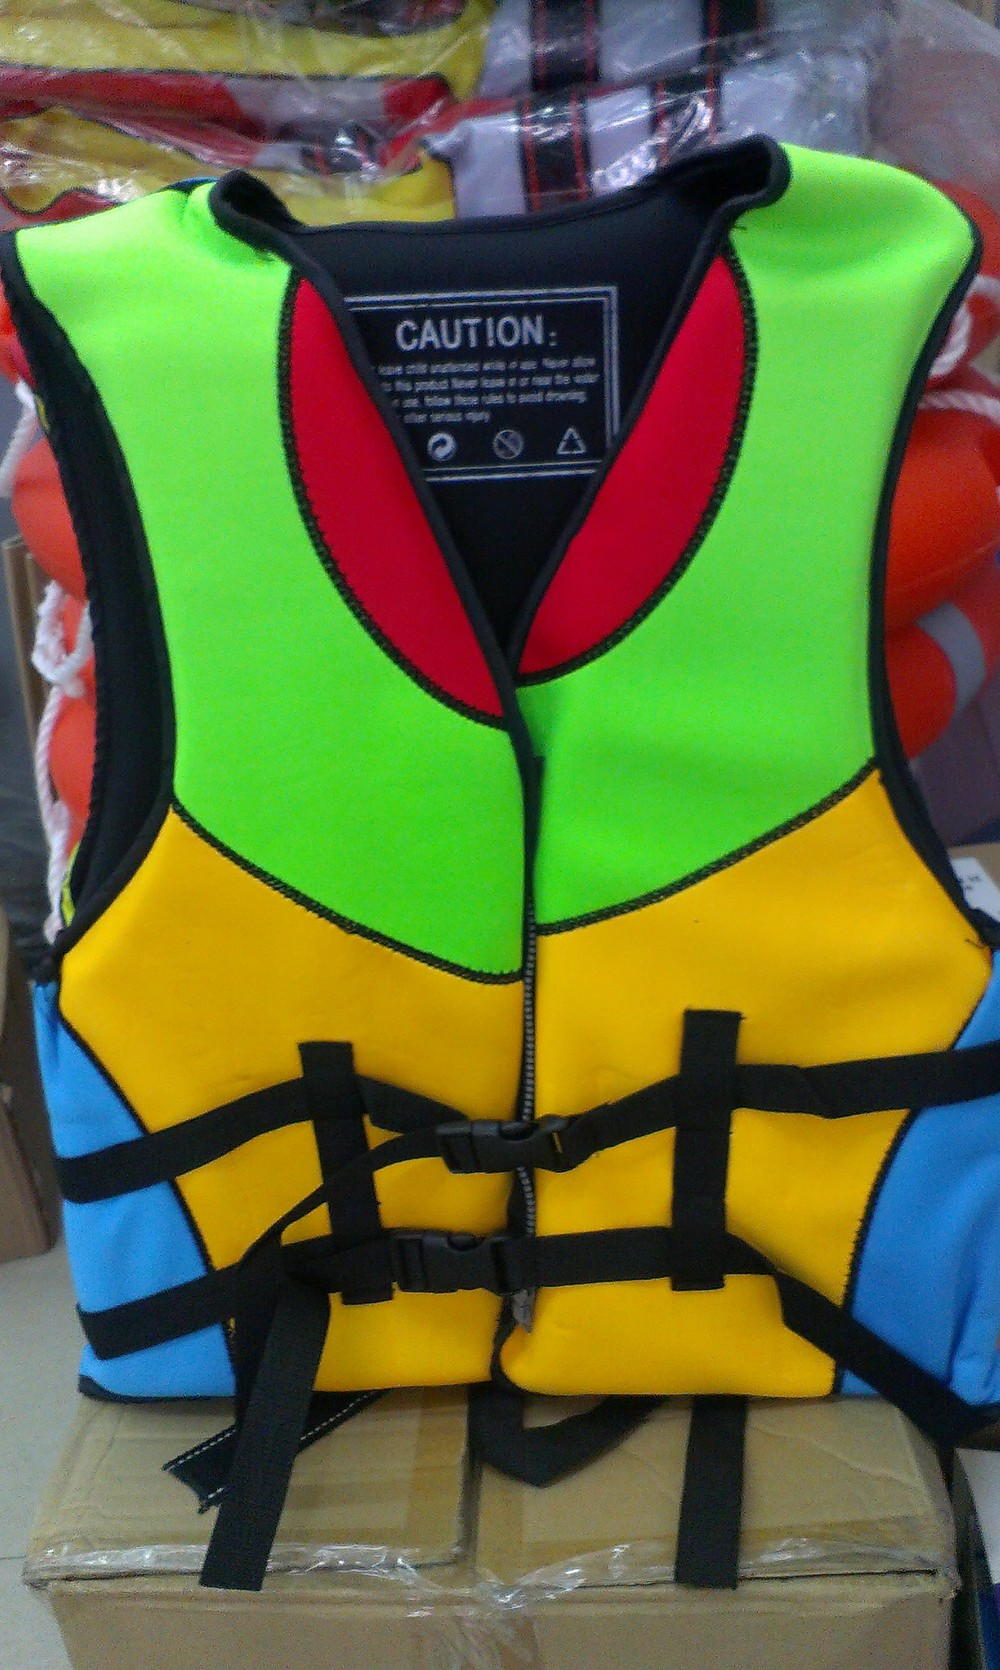 2015 Inflatable Personalized Solas Approved Life Jacket